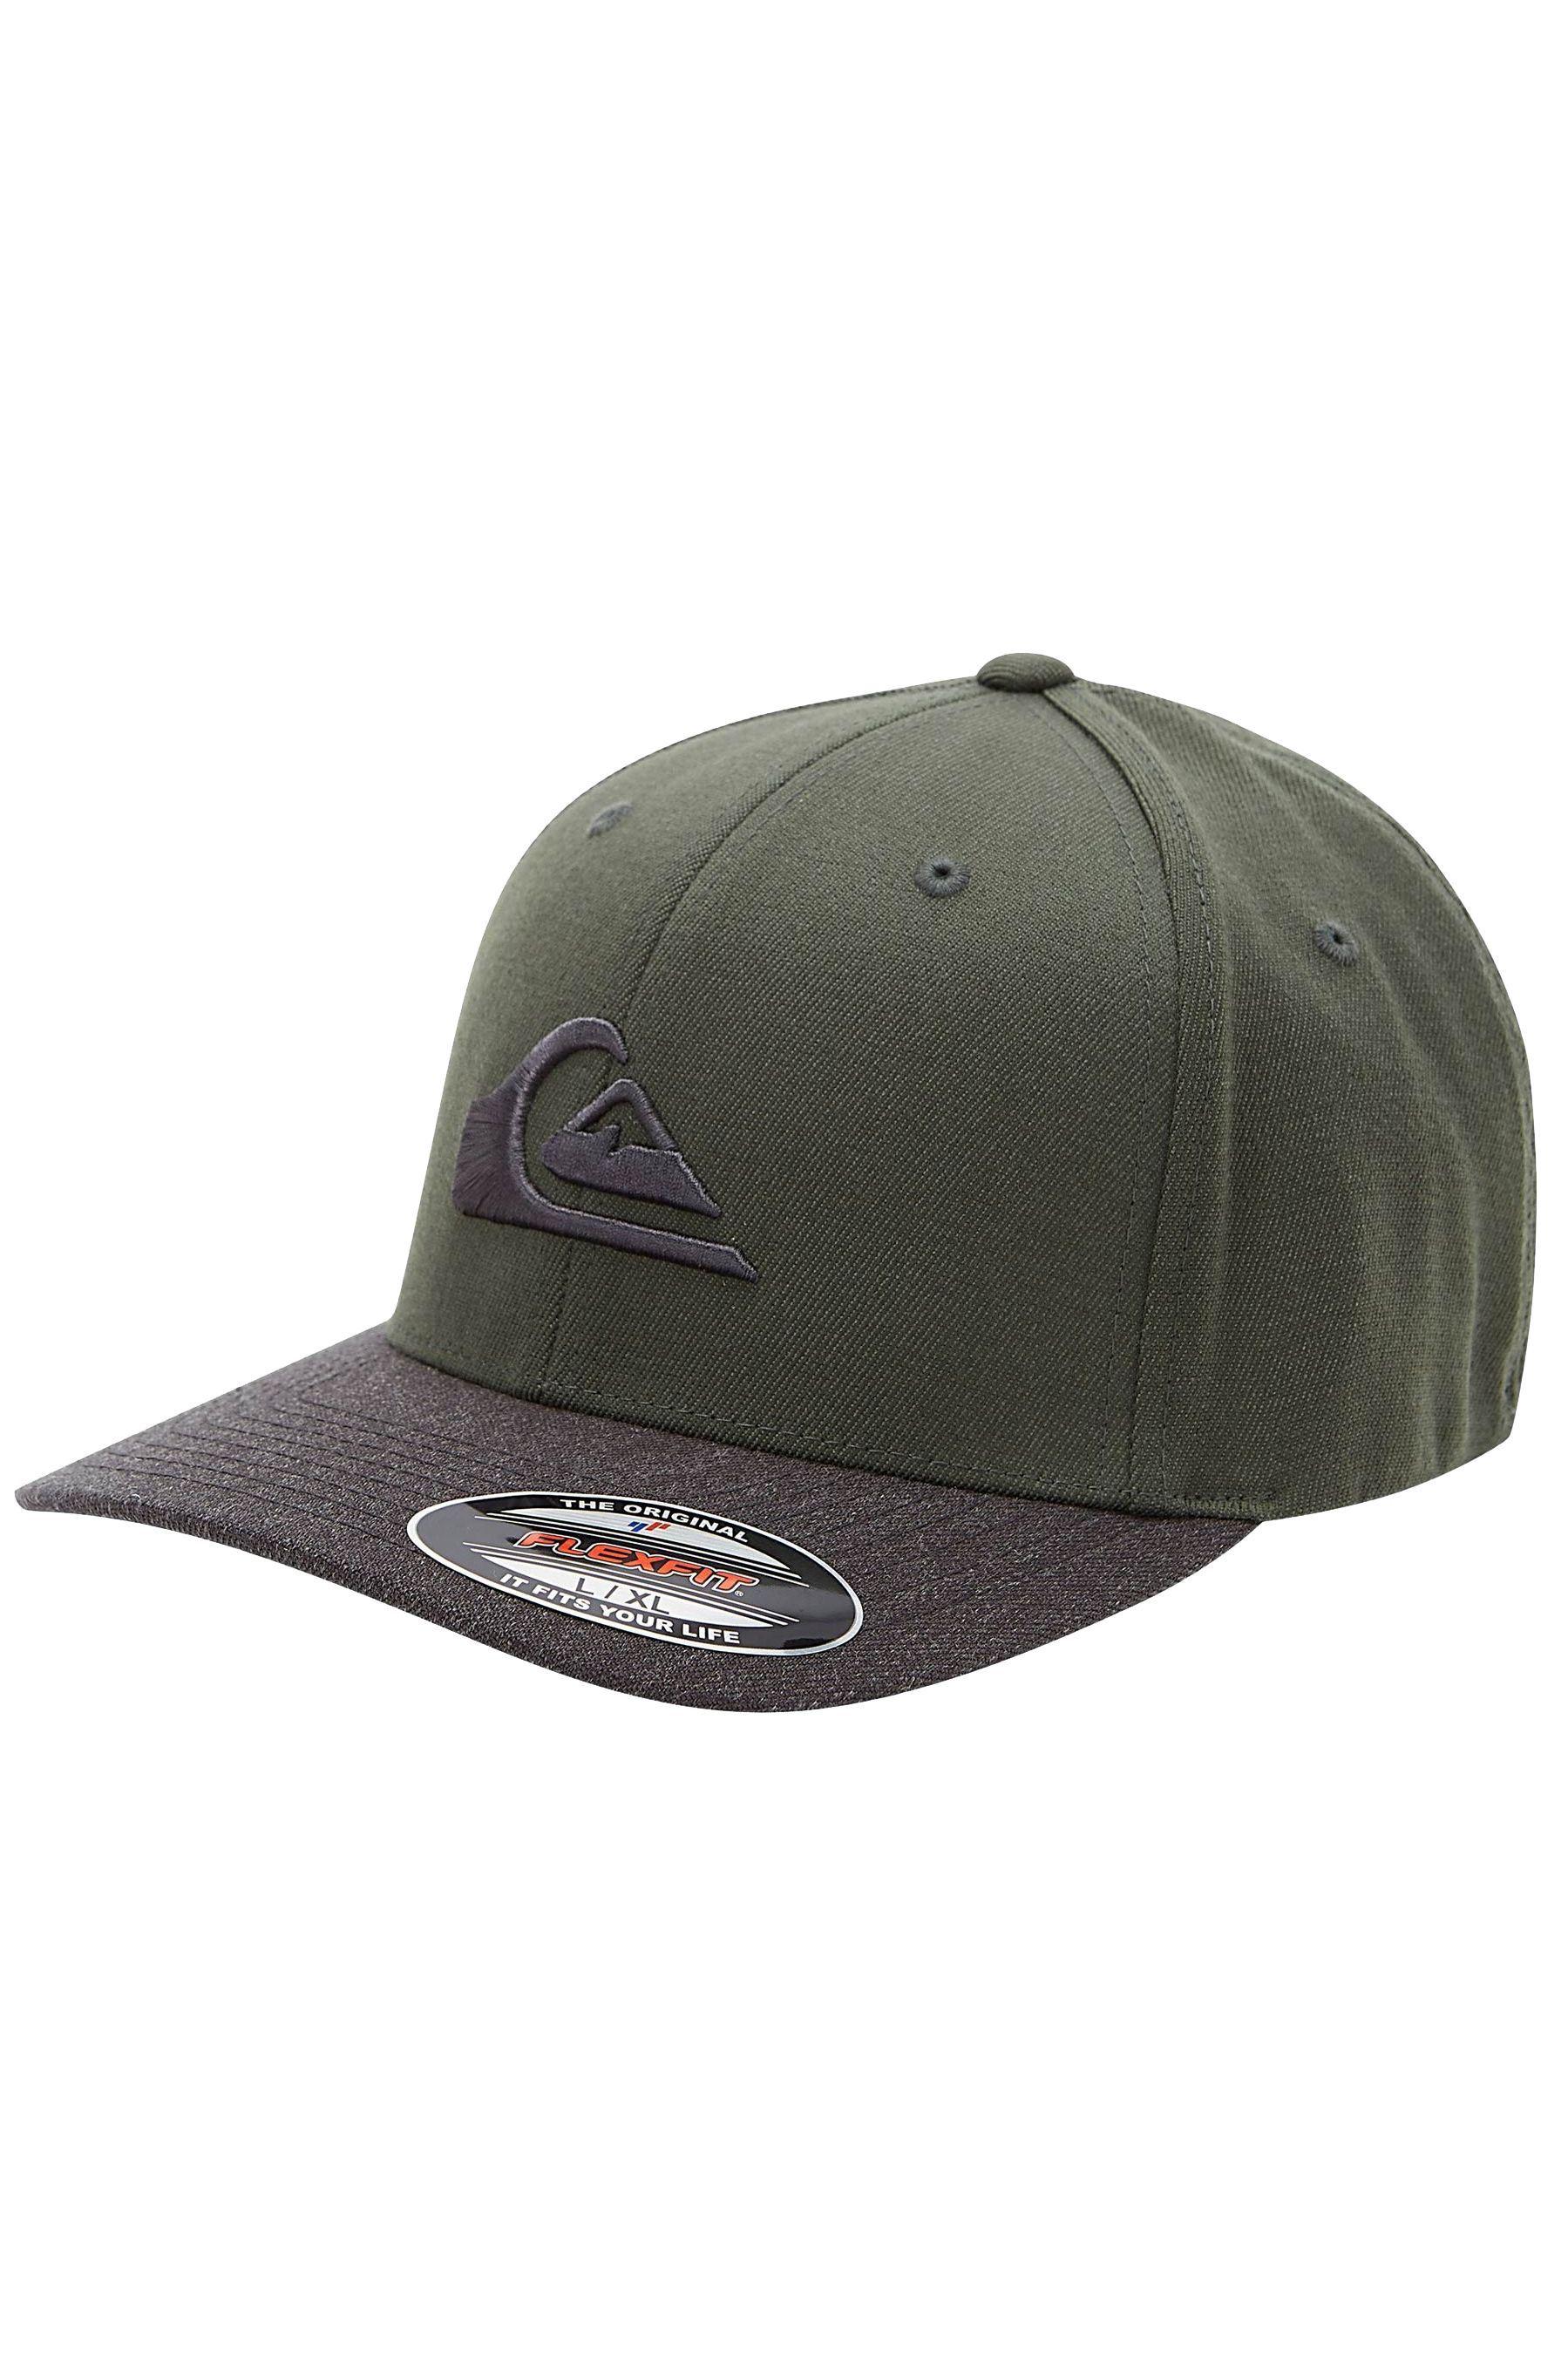 Quiksilver Cap   MOUNTAIN AND WAVE Thyme/Black